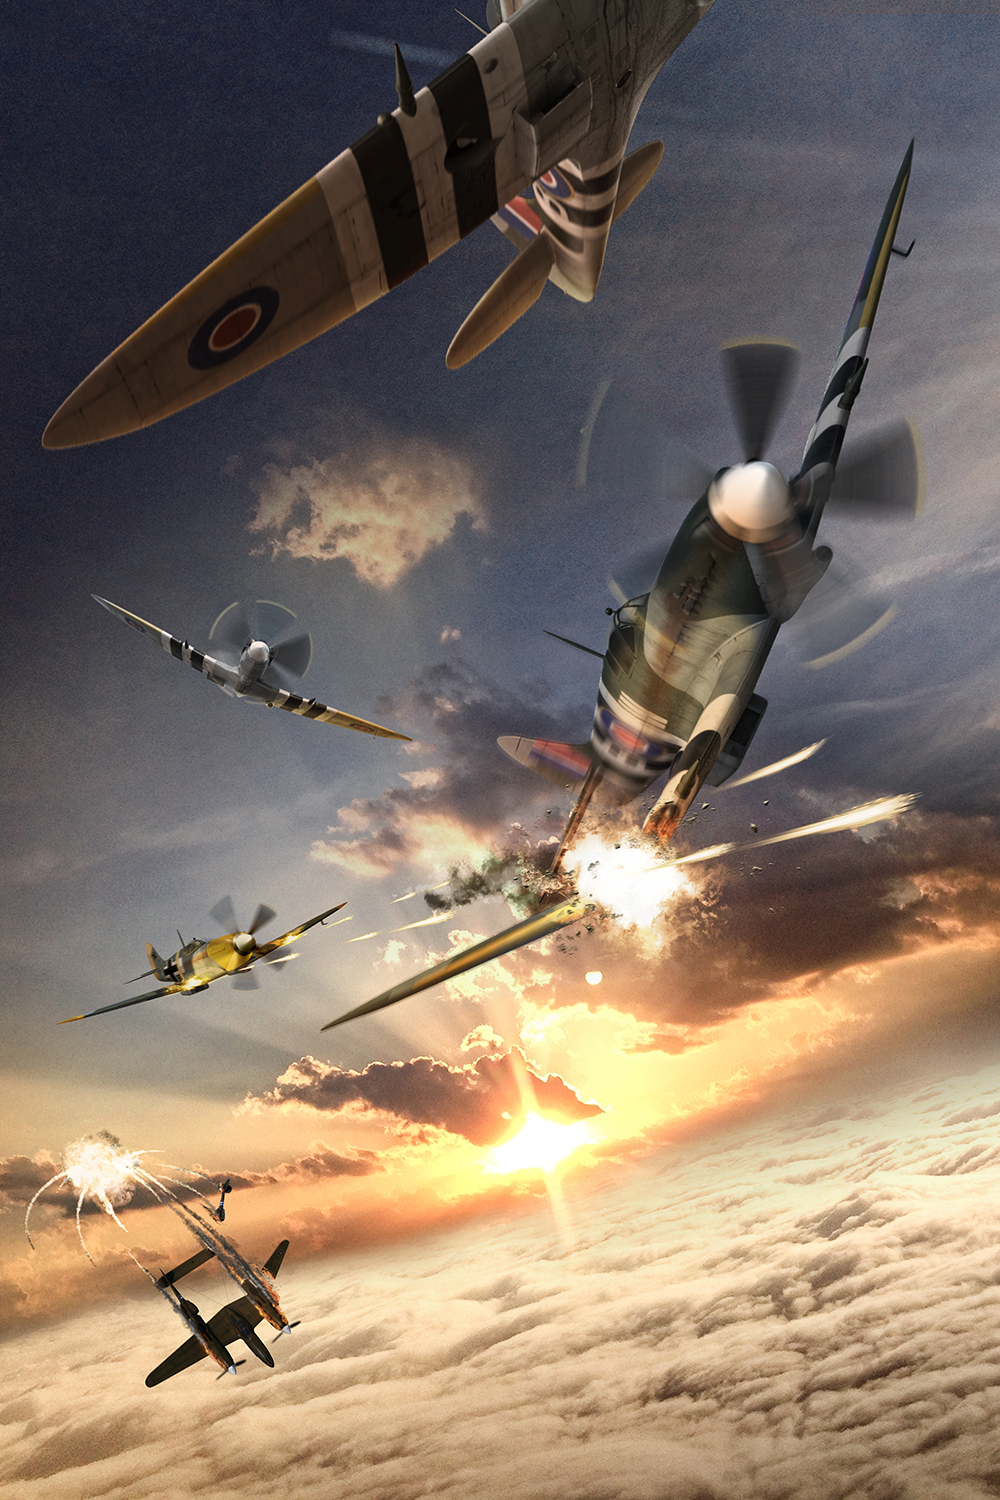 WWII Dogfight - 2016Photoshop CC